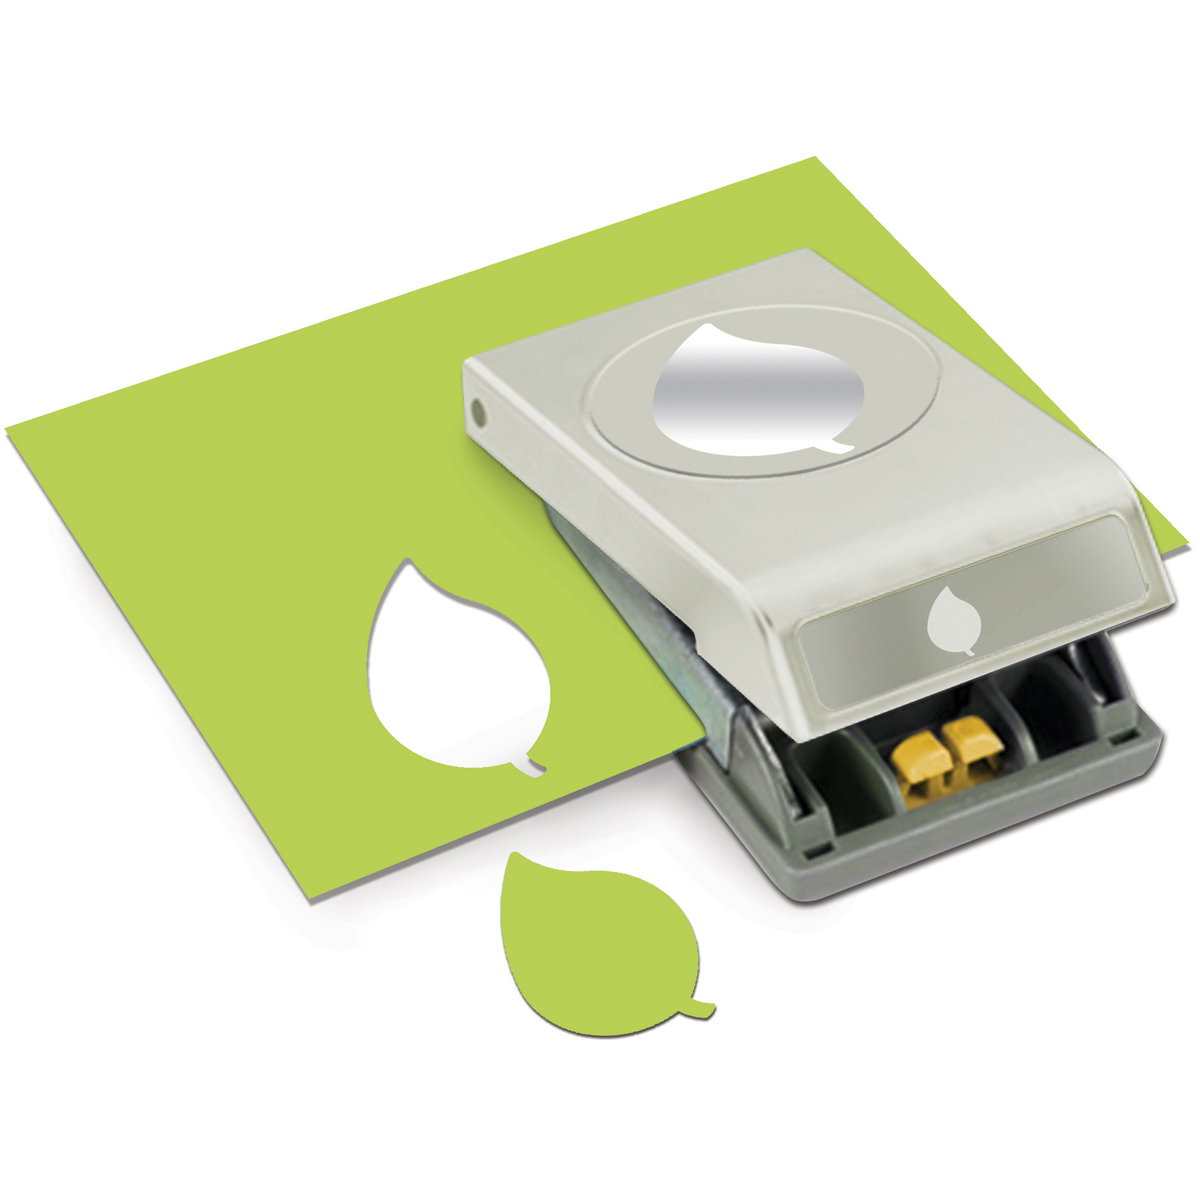 leaf paper punch Find great deals on ebay for leaf paper punch and petal paper punch shop with confidence.